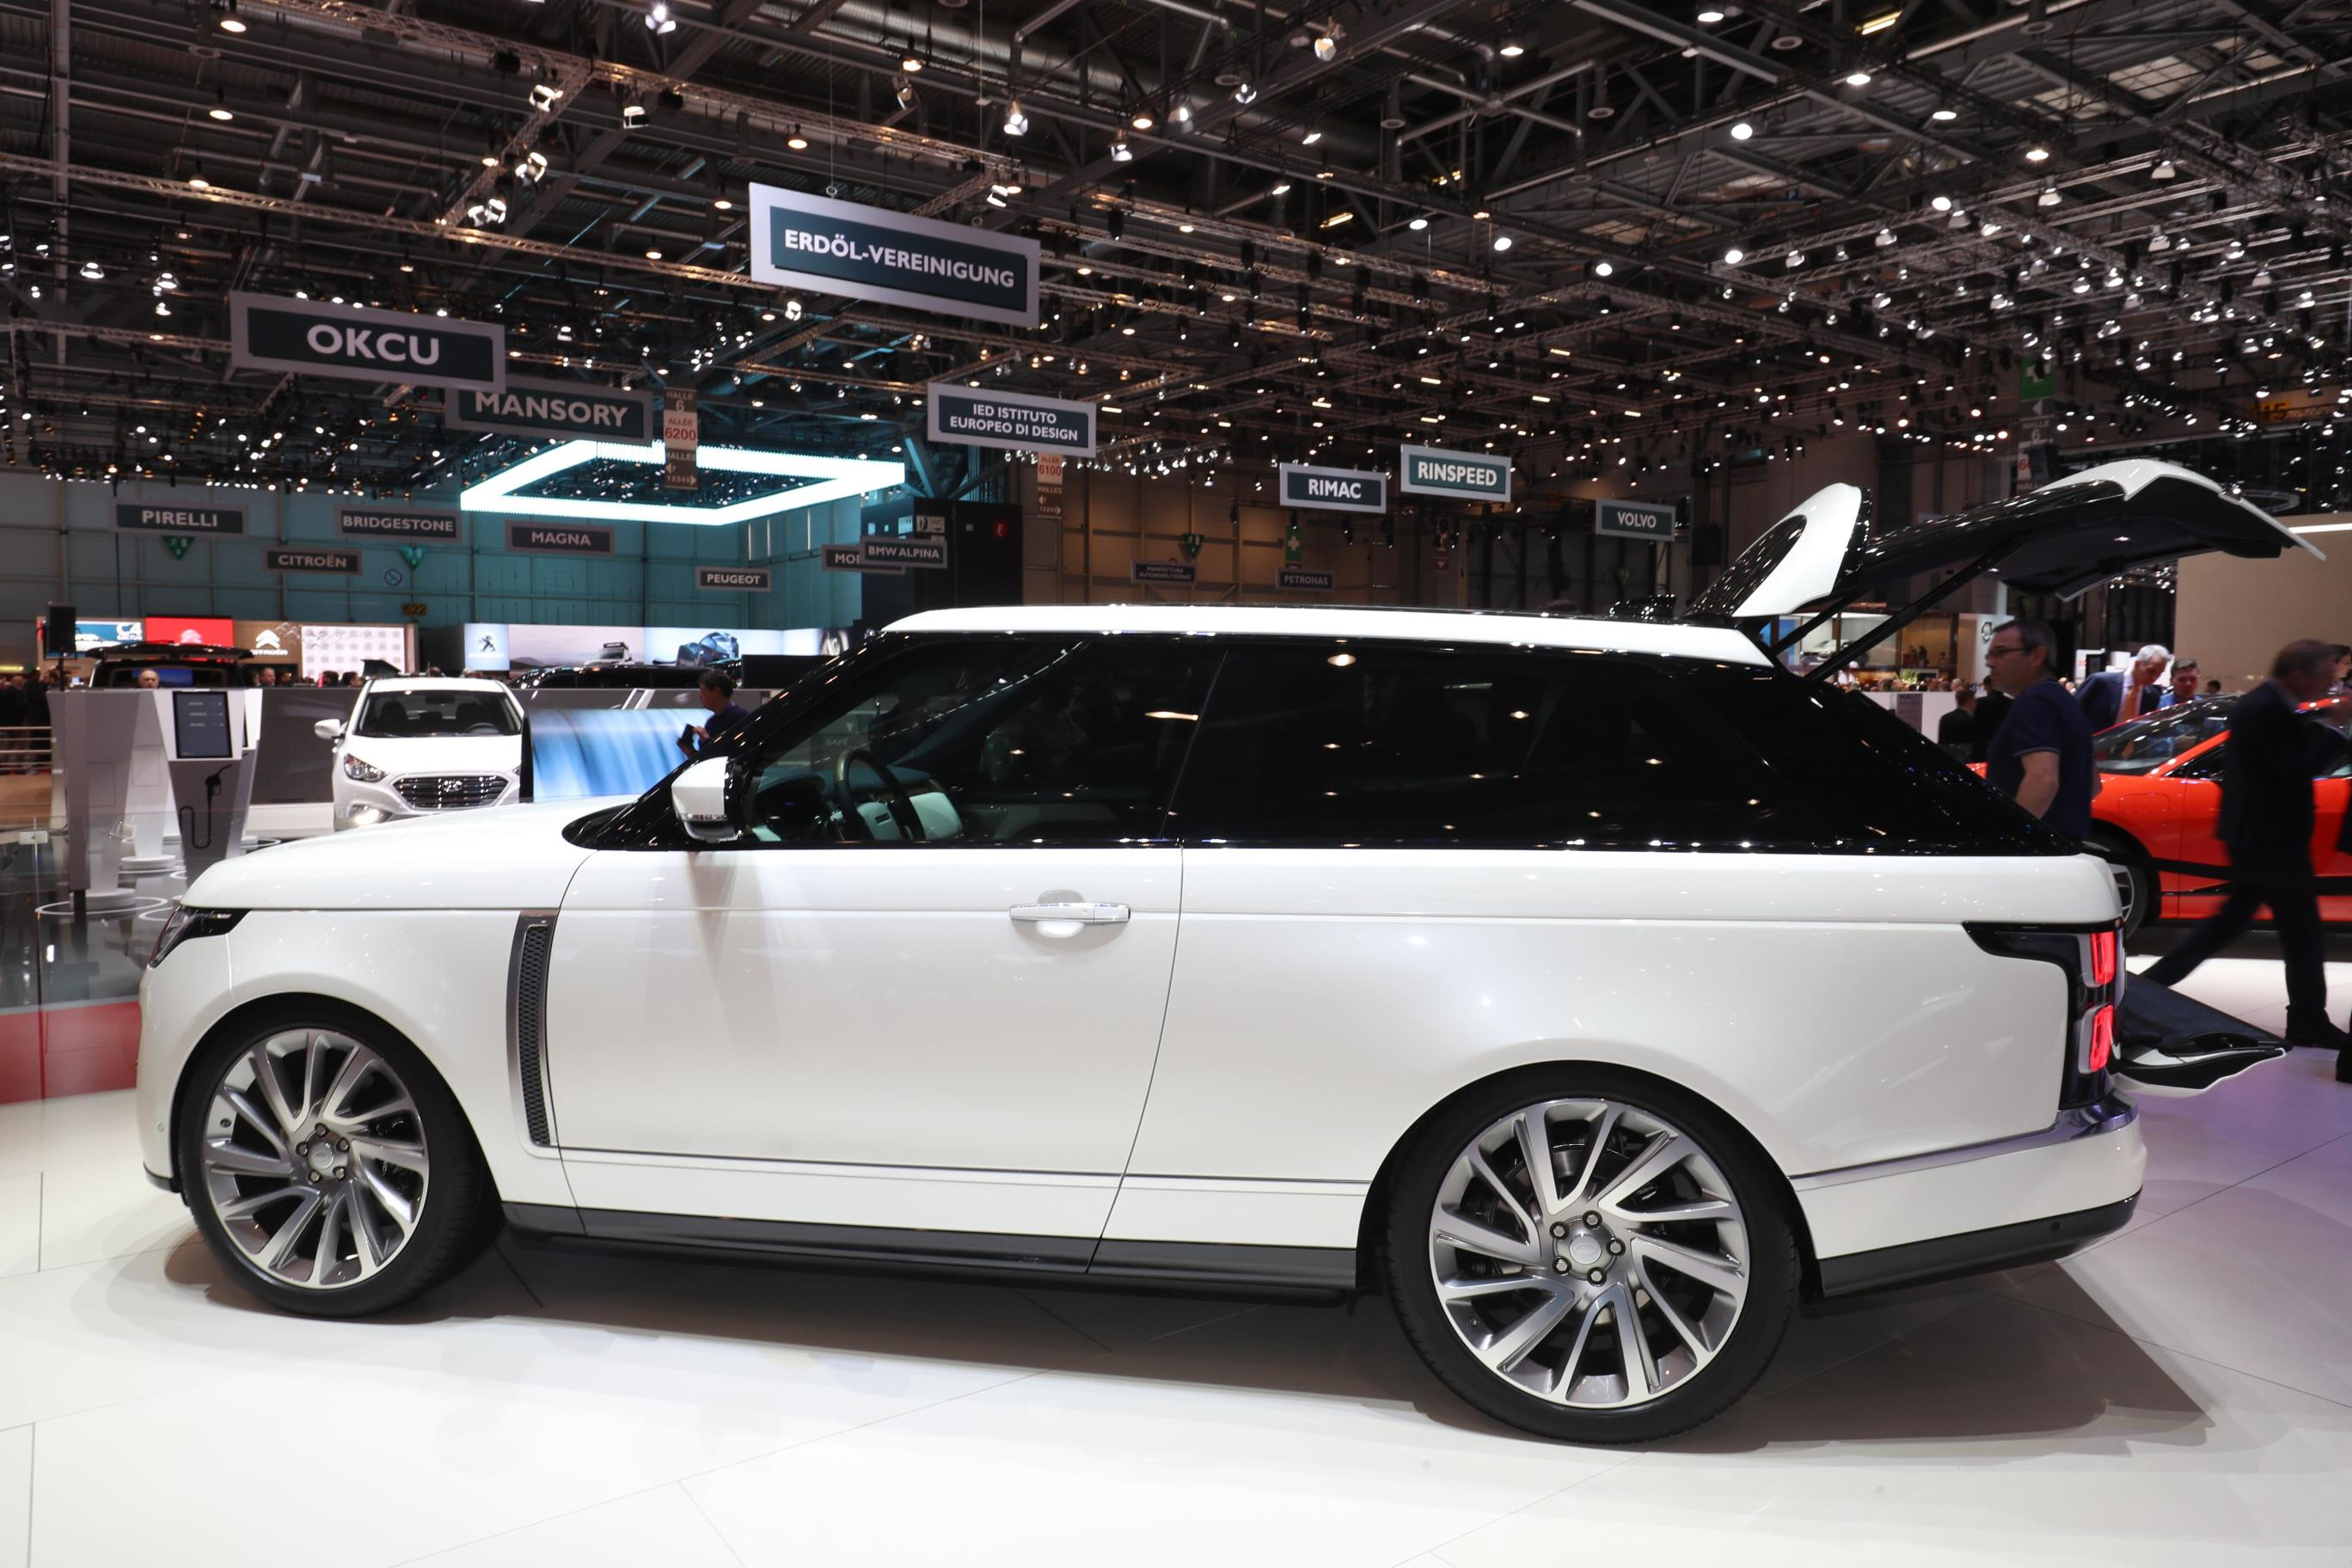 White Range Rover SV coupe at a motor show seen side on